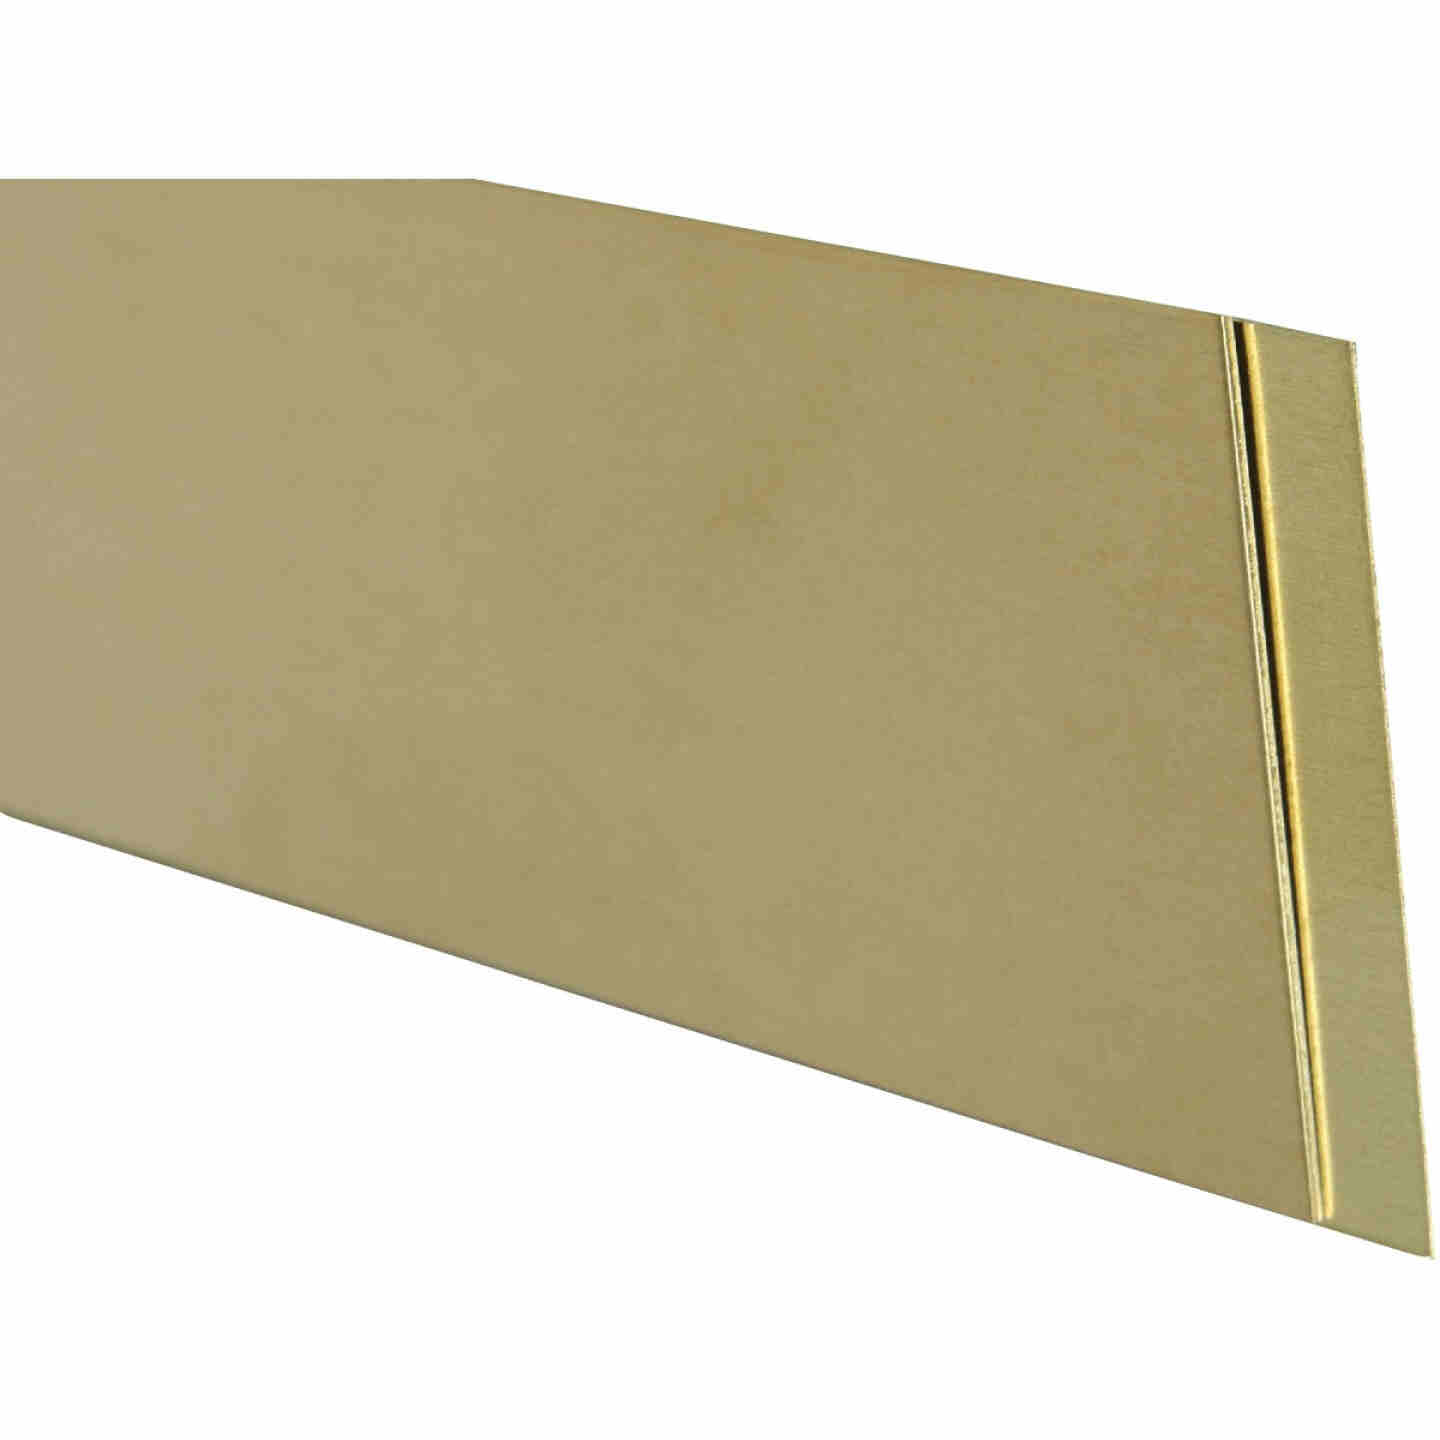 K&S Brass 2 In. x 12 In. Strip Stock Image 1